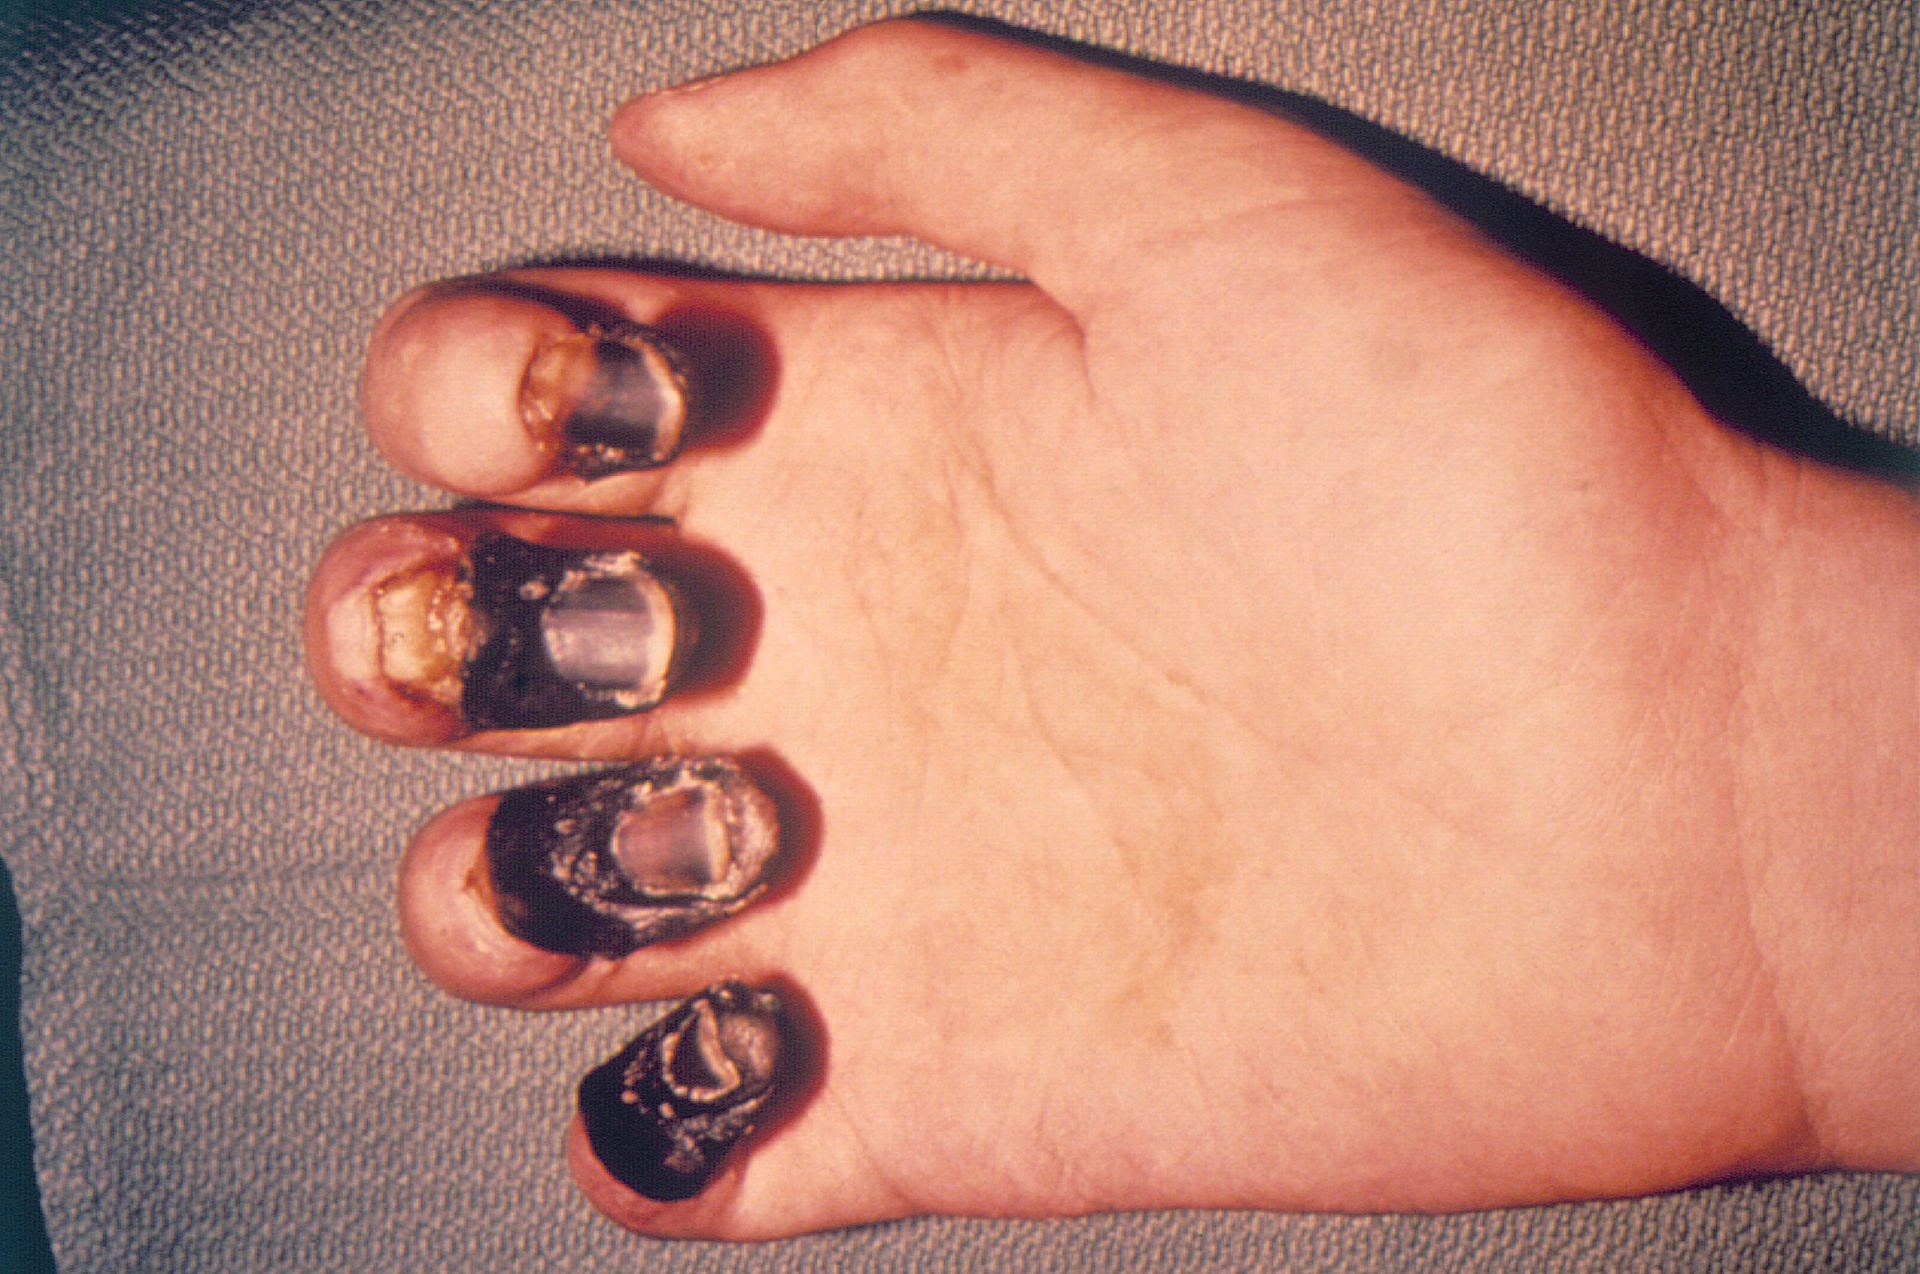 Acral gangrene taking over the fingers of a bubonic plague victim. (Photo credit: Centers for Disease Control and Prevention)